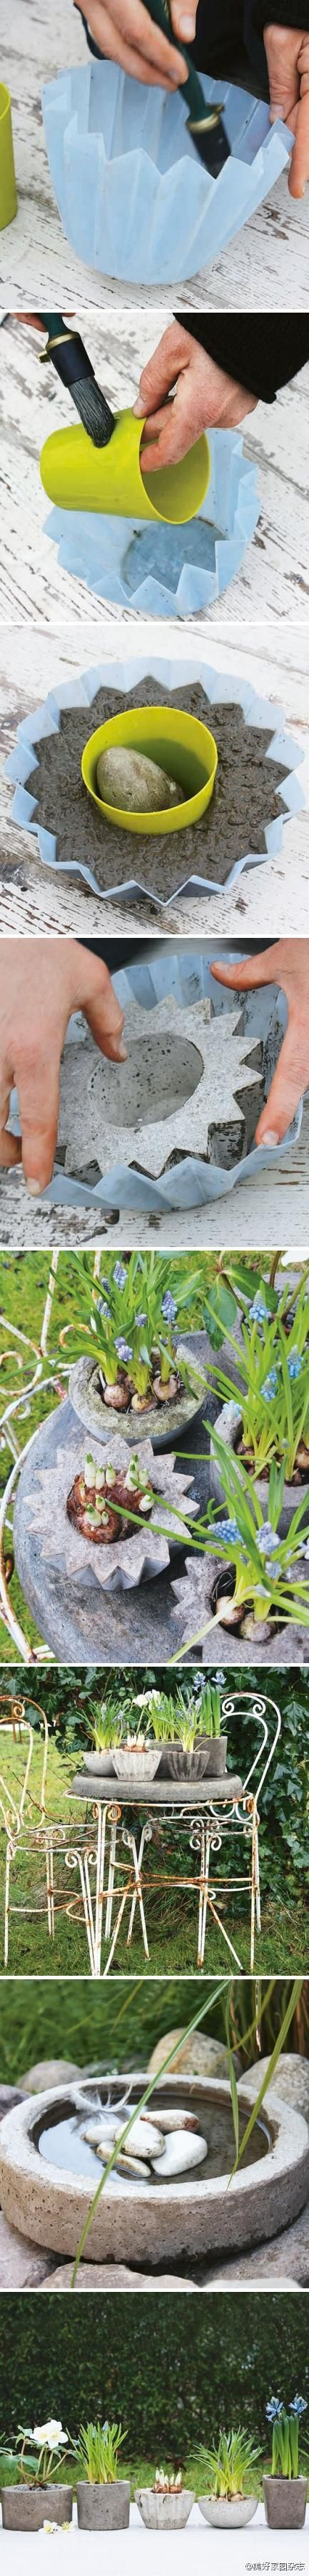 Inspiring images of how to create planters of all shapes